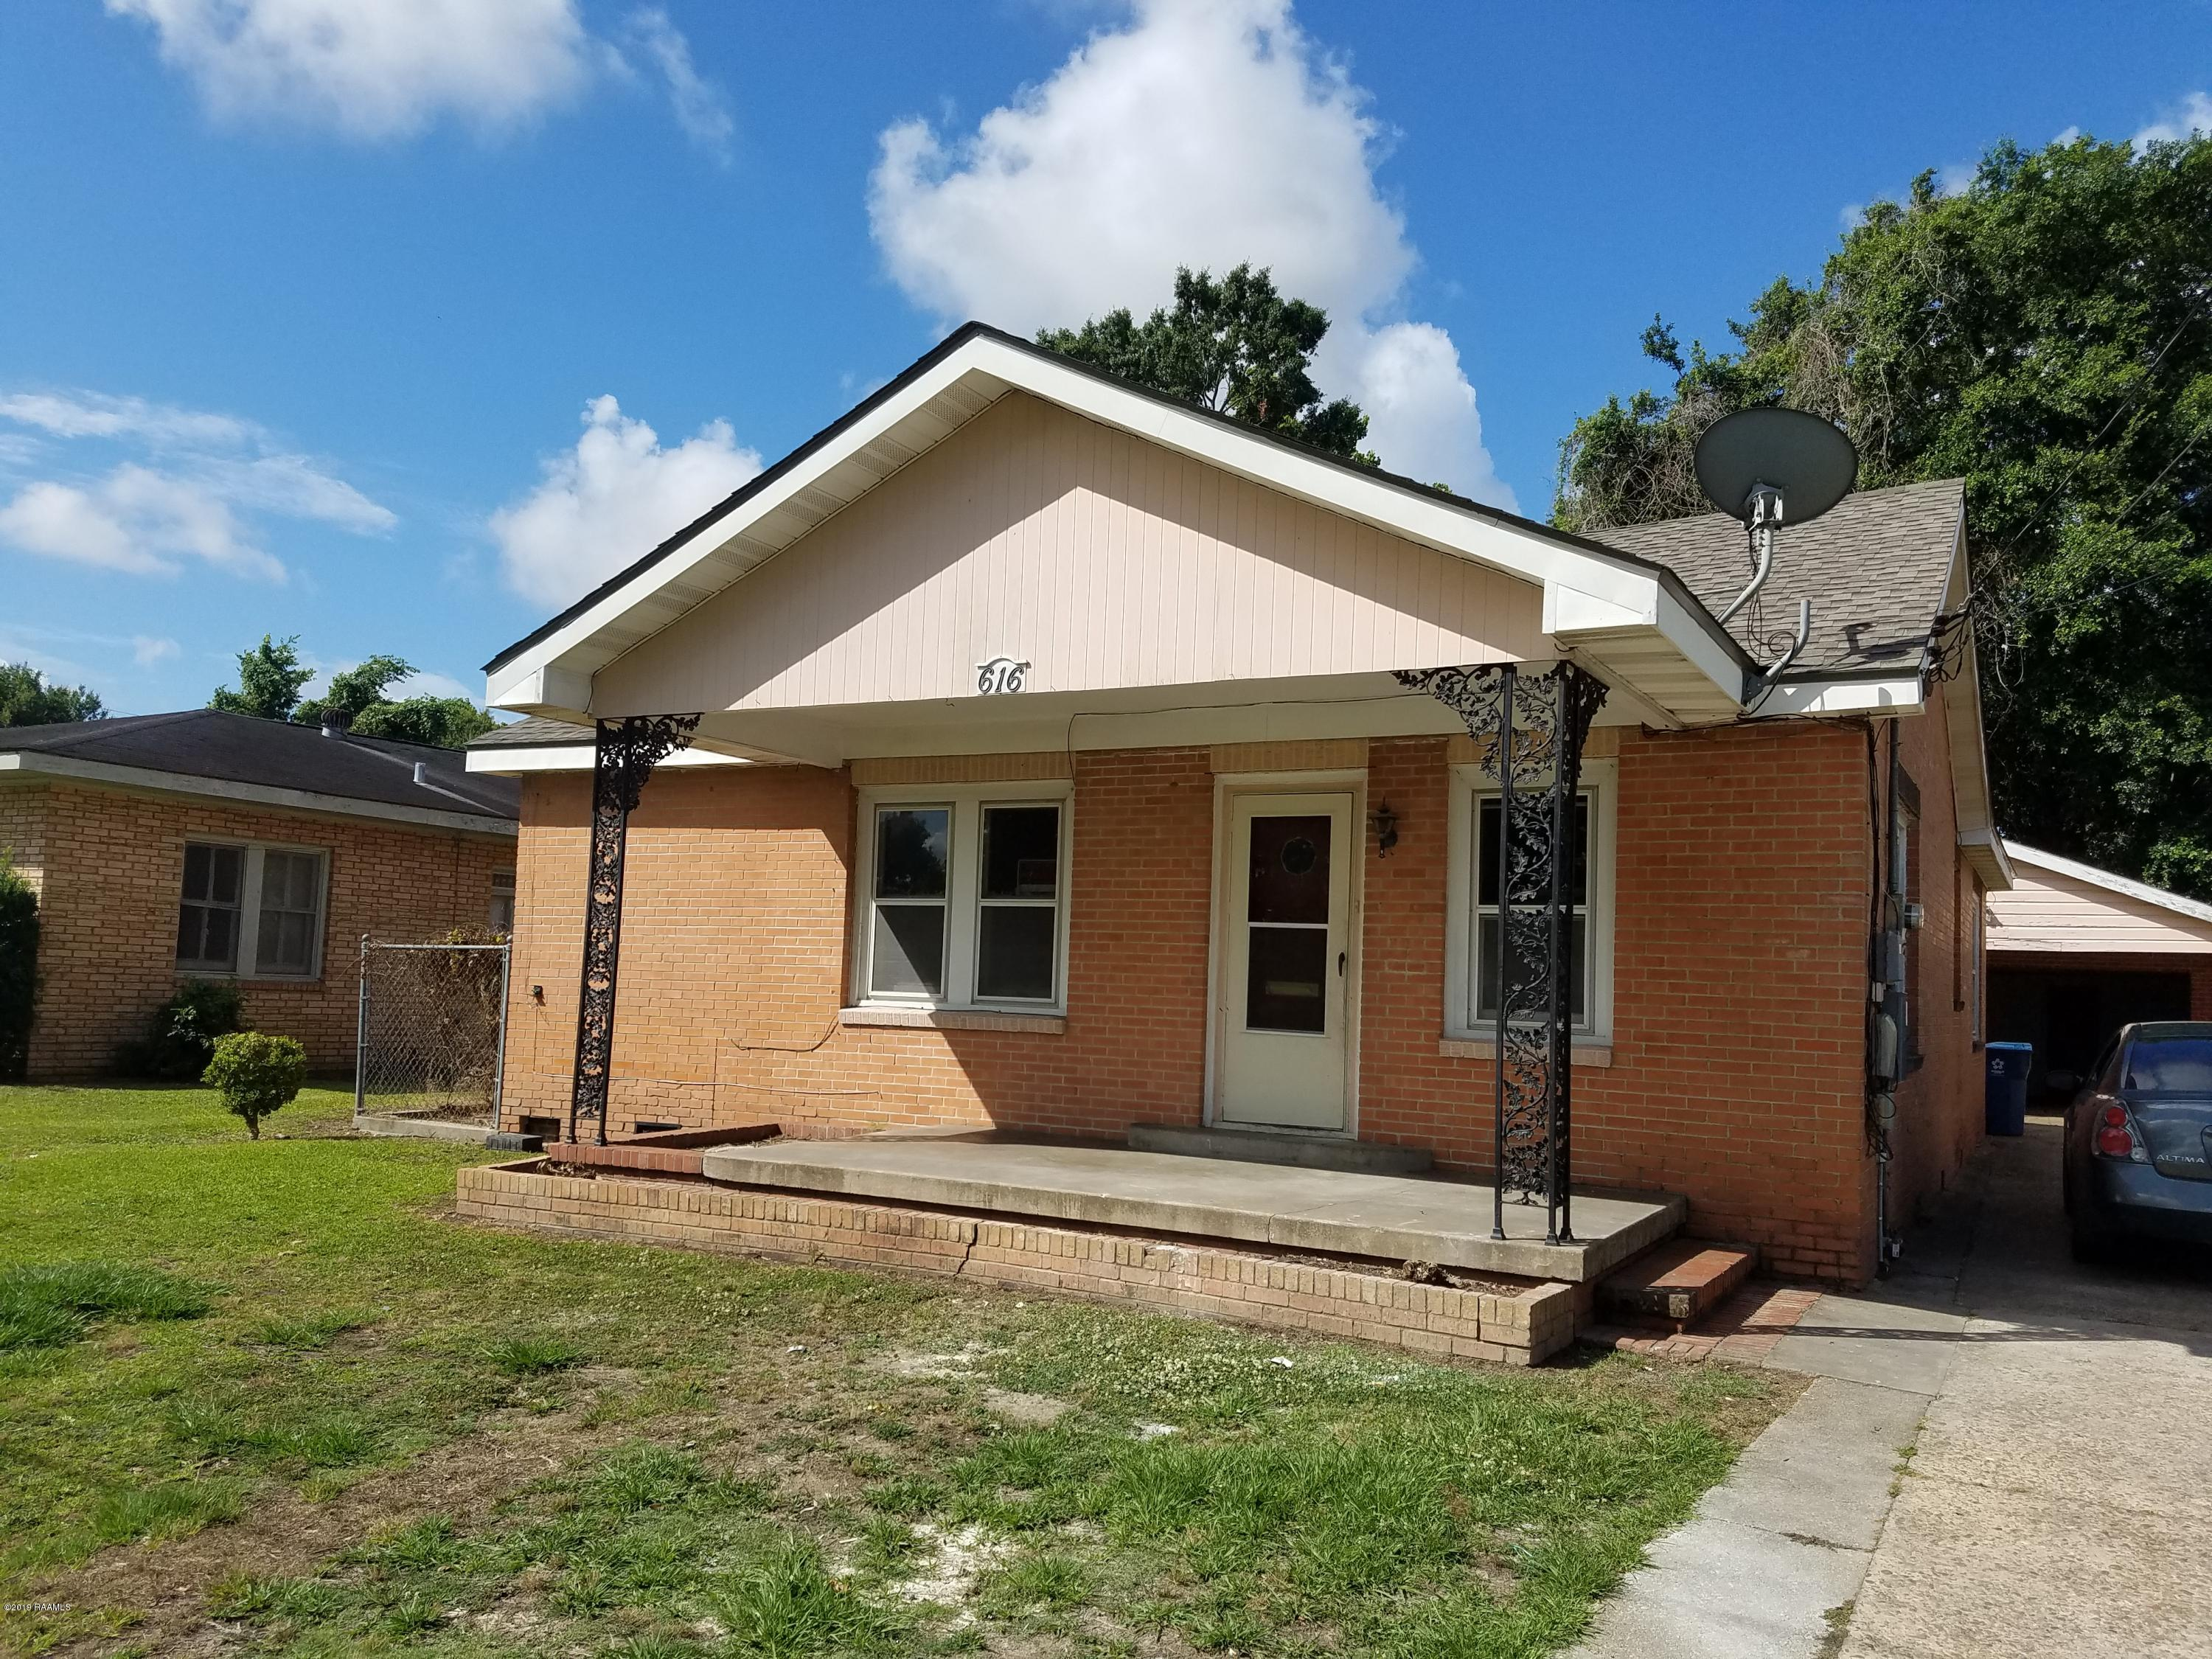 616 Orange Street S, Lafayette, LA 70501 Photo #1